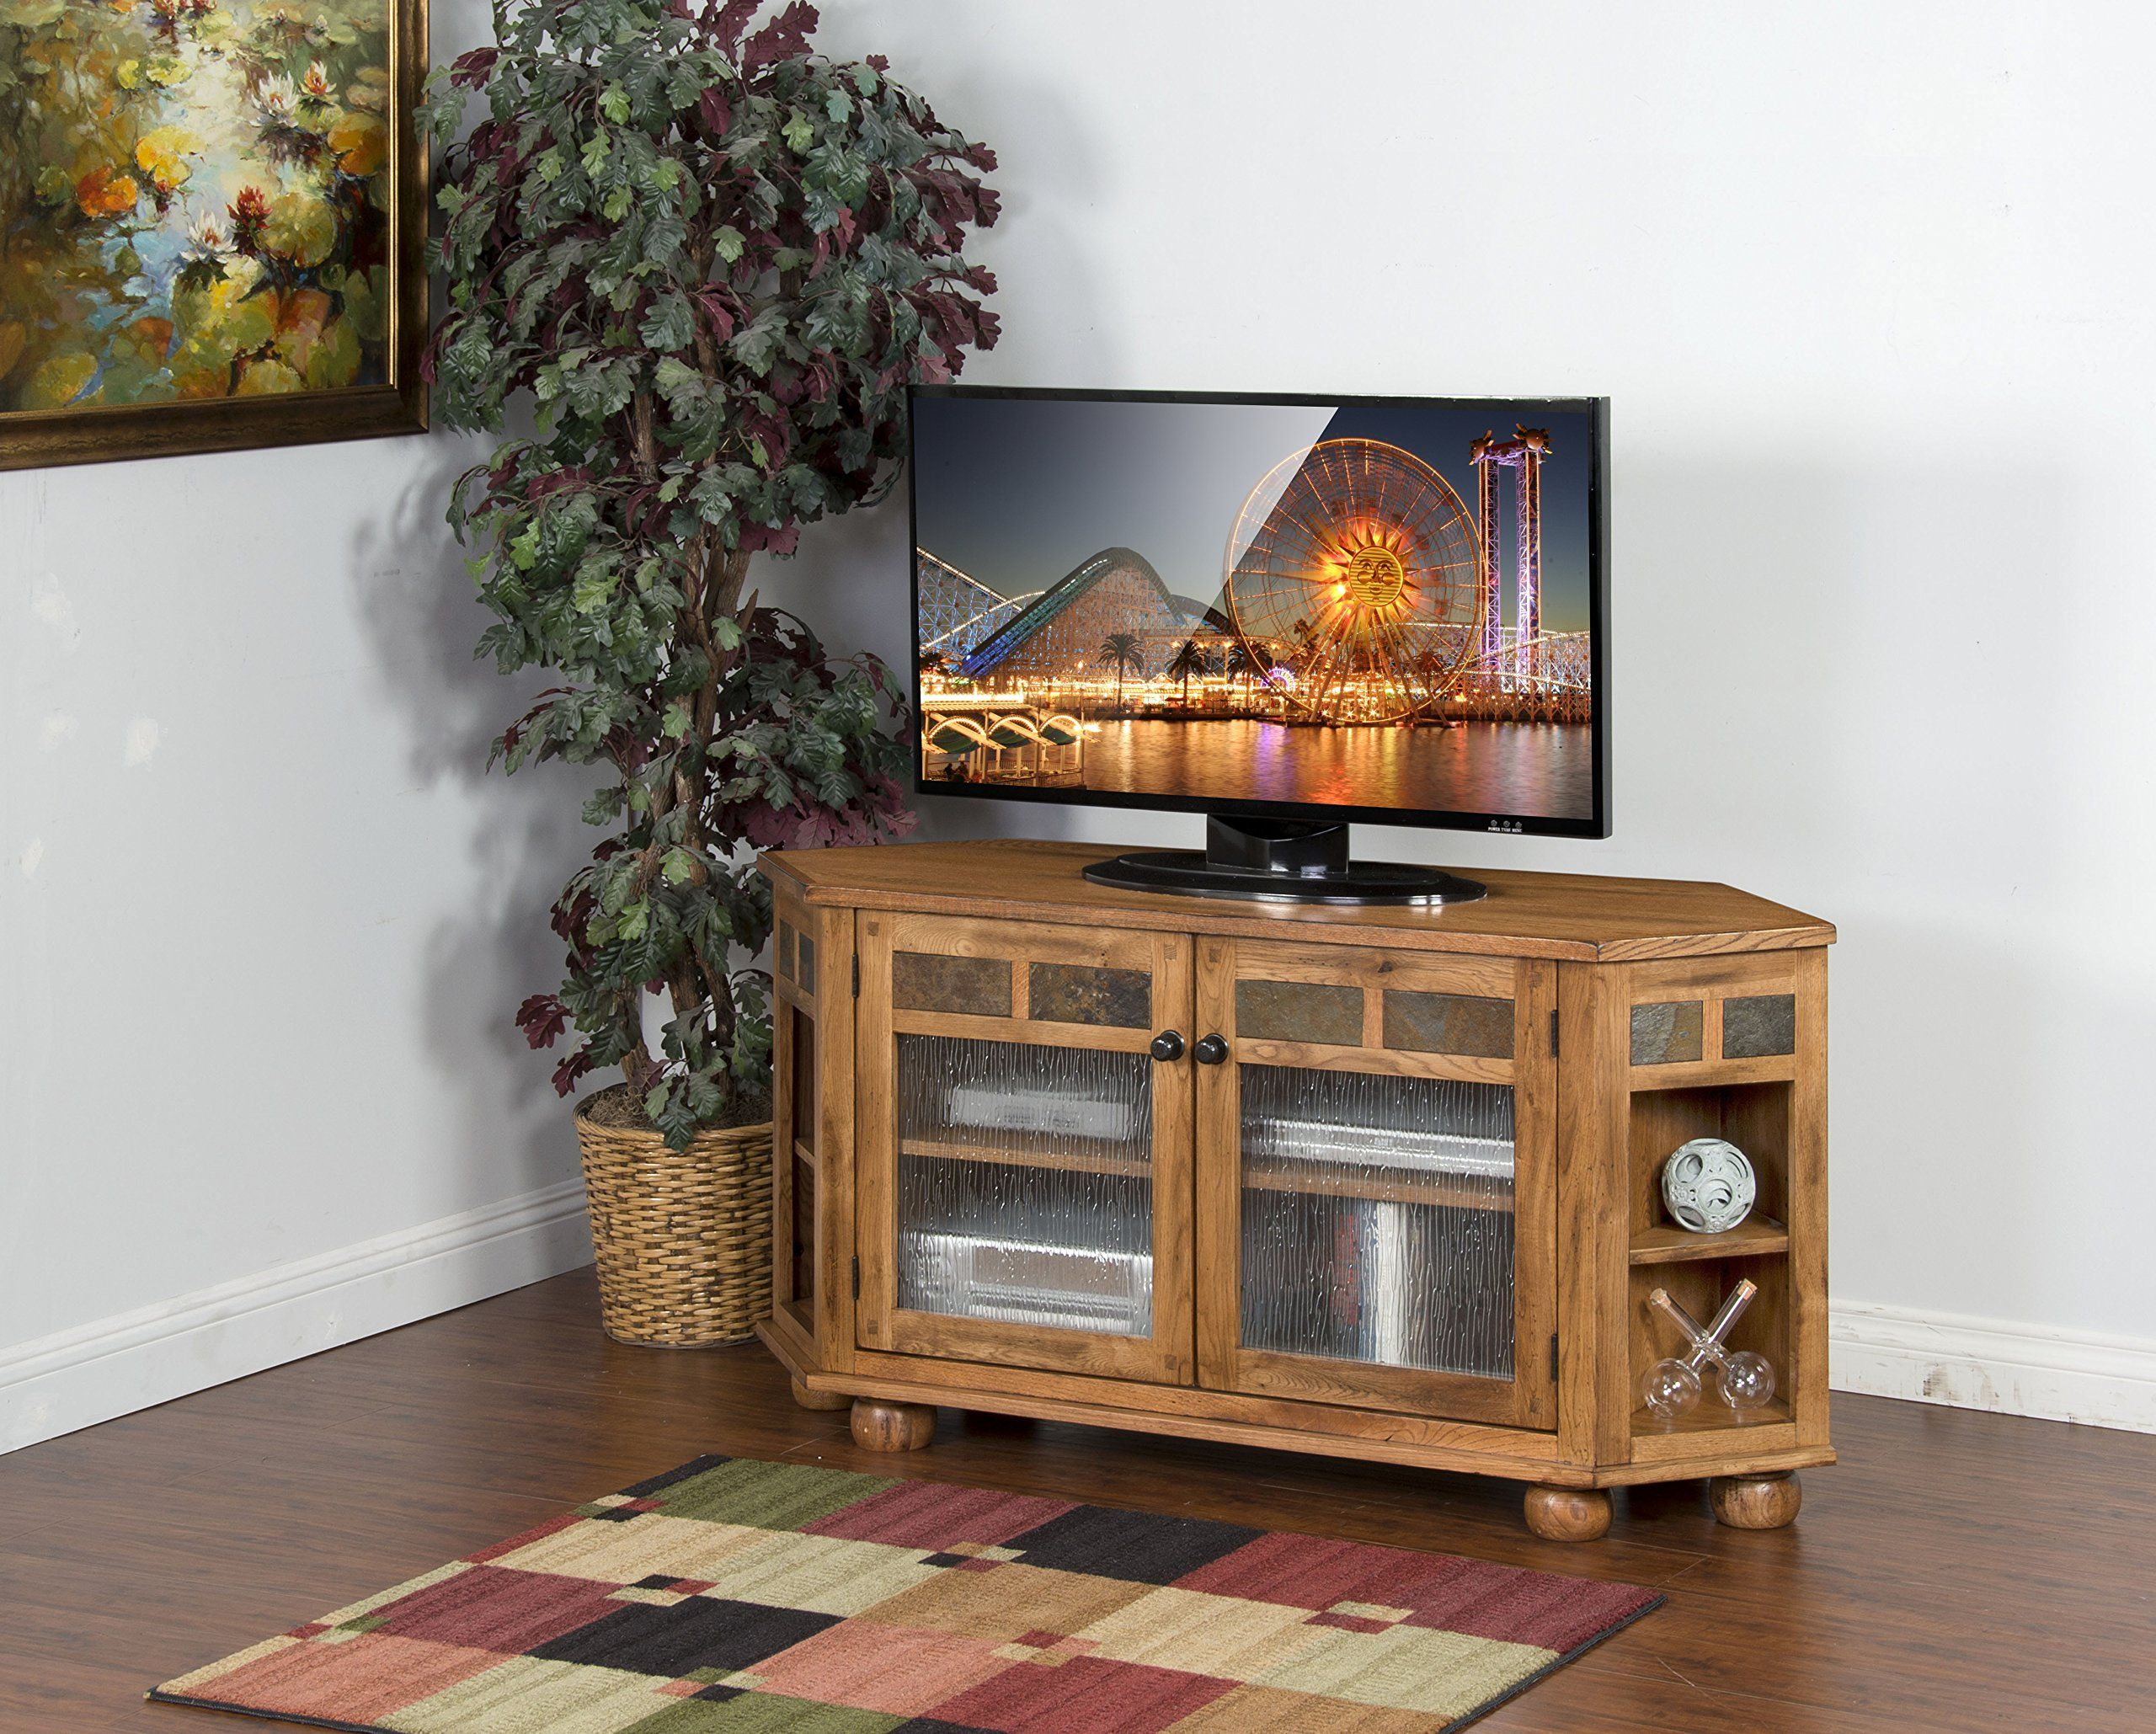 Sunny designs sedona corner hutch and tv console television stands